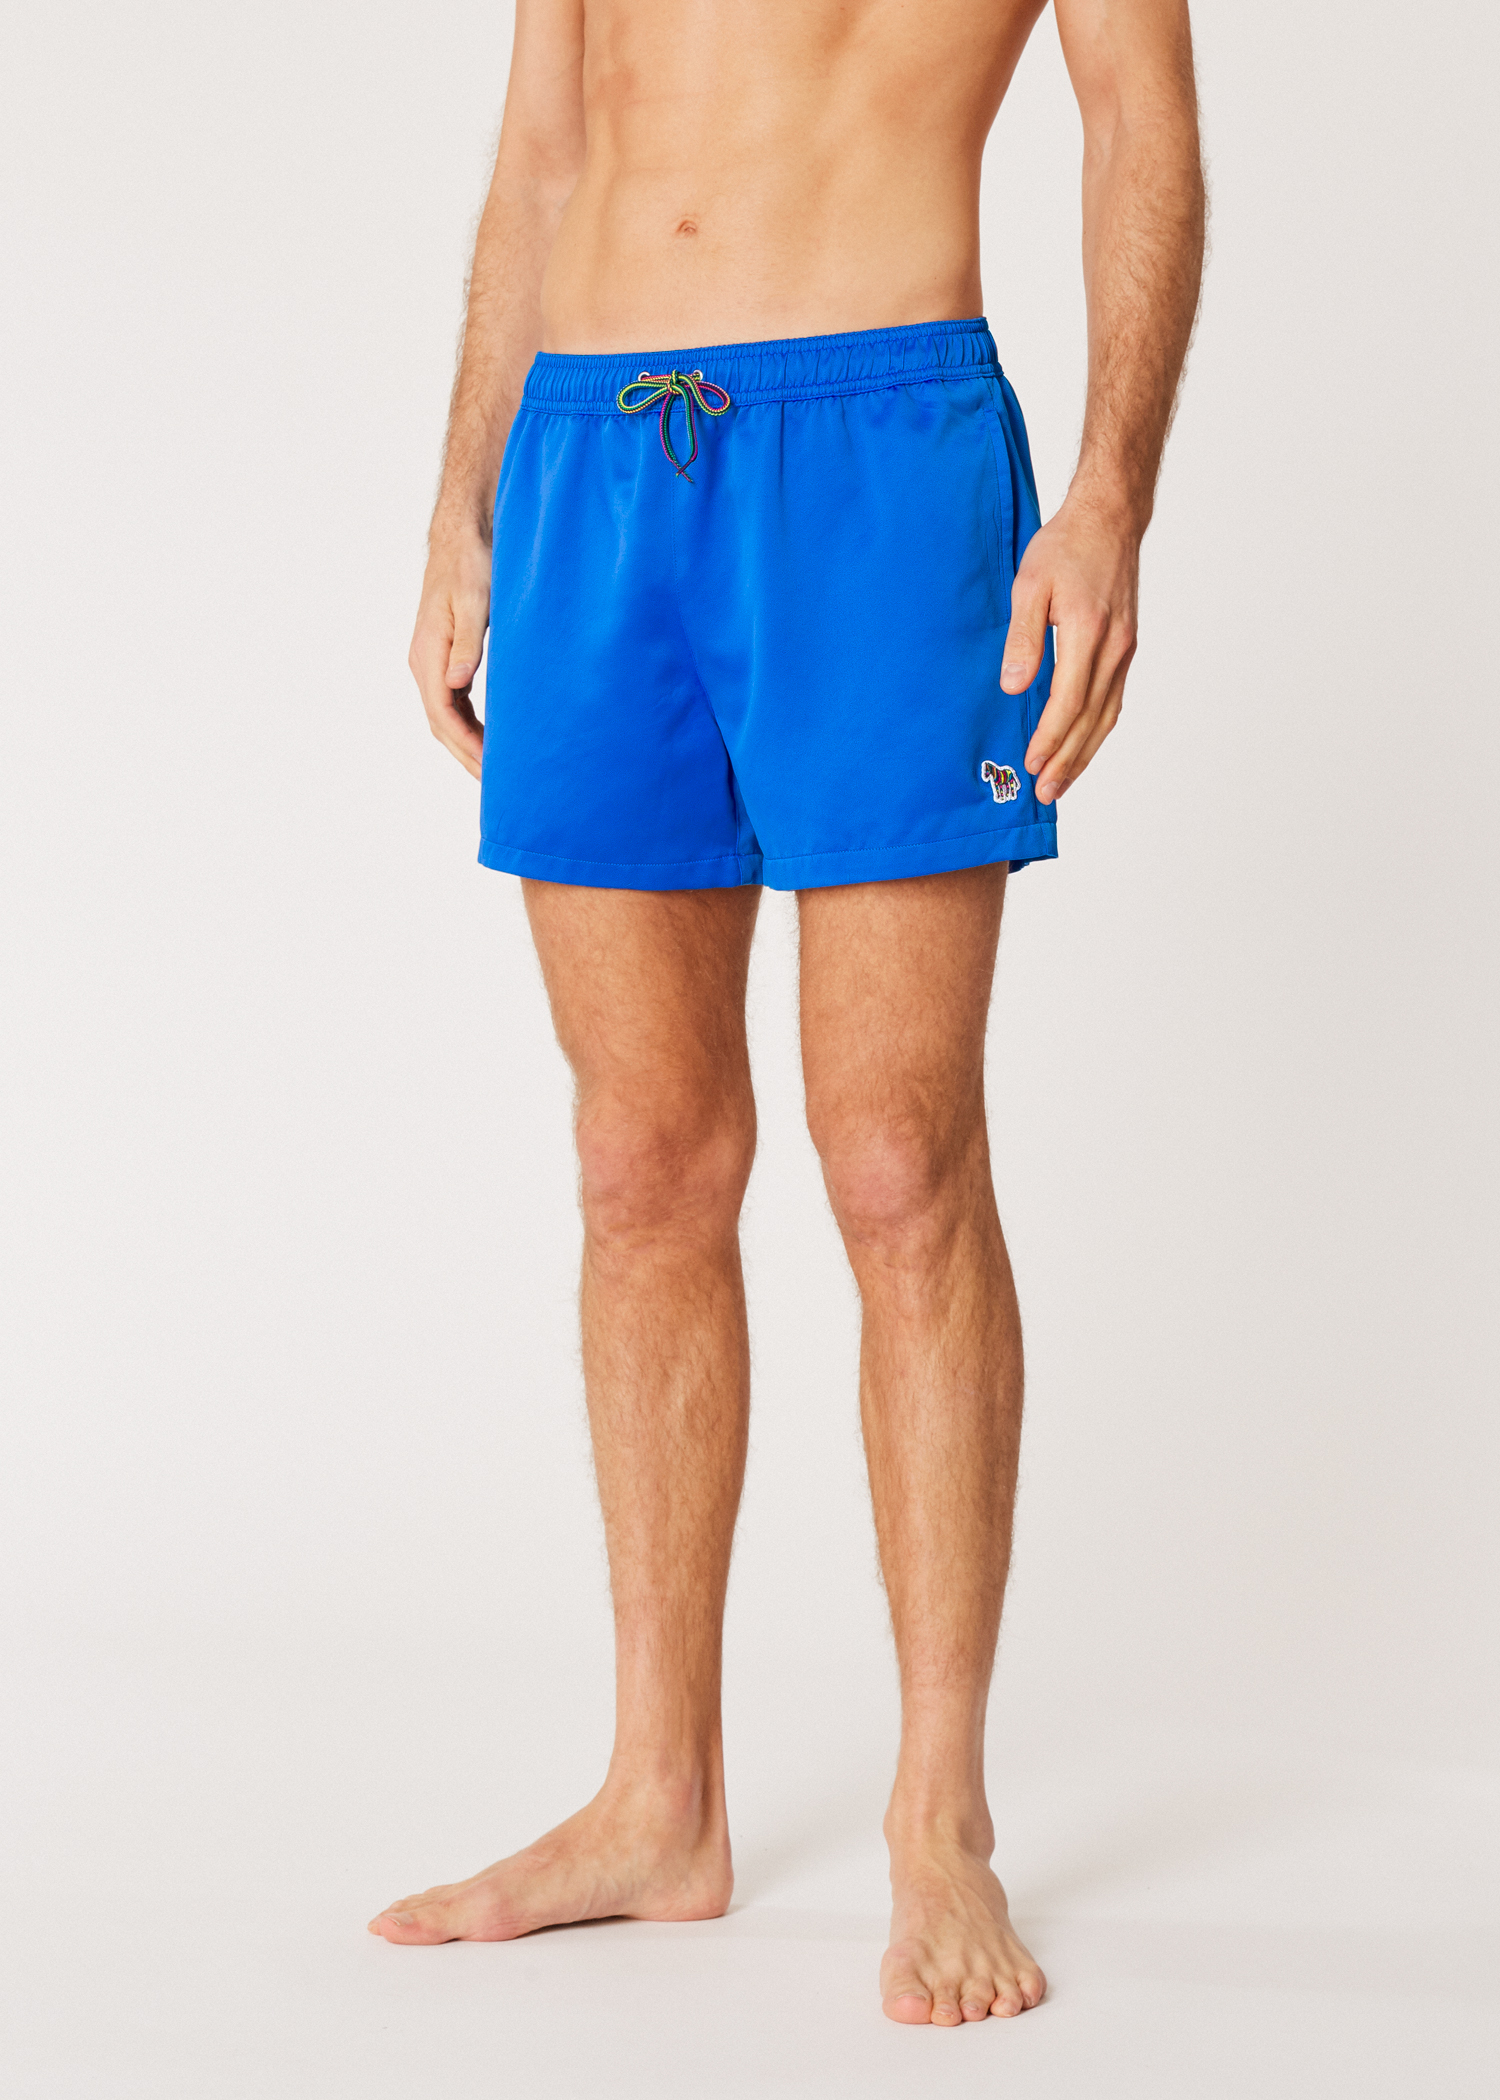 31f7e1c362 Model front view- Men's Blue Zebra Logo Swim Shorts by Paul Smith